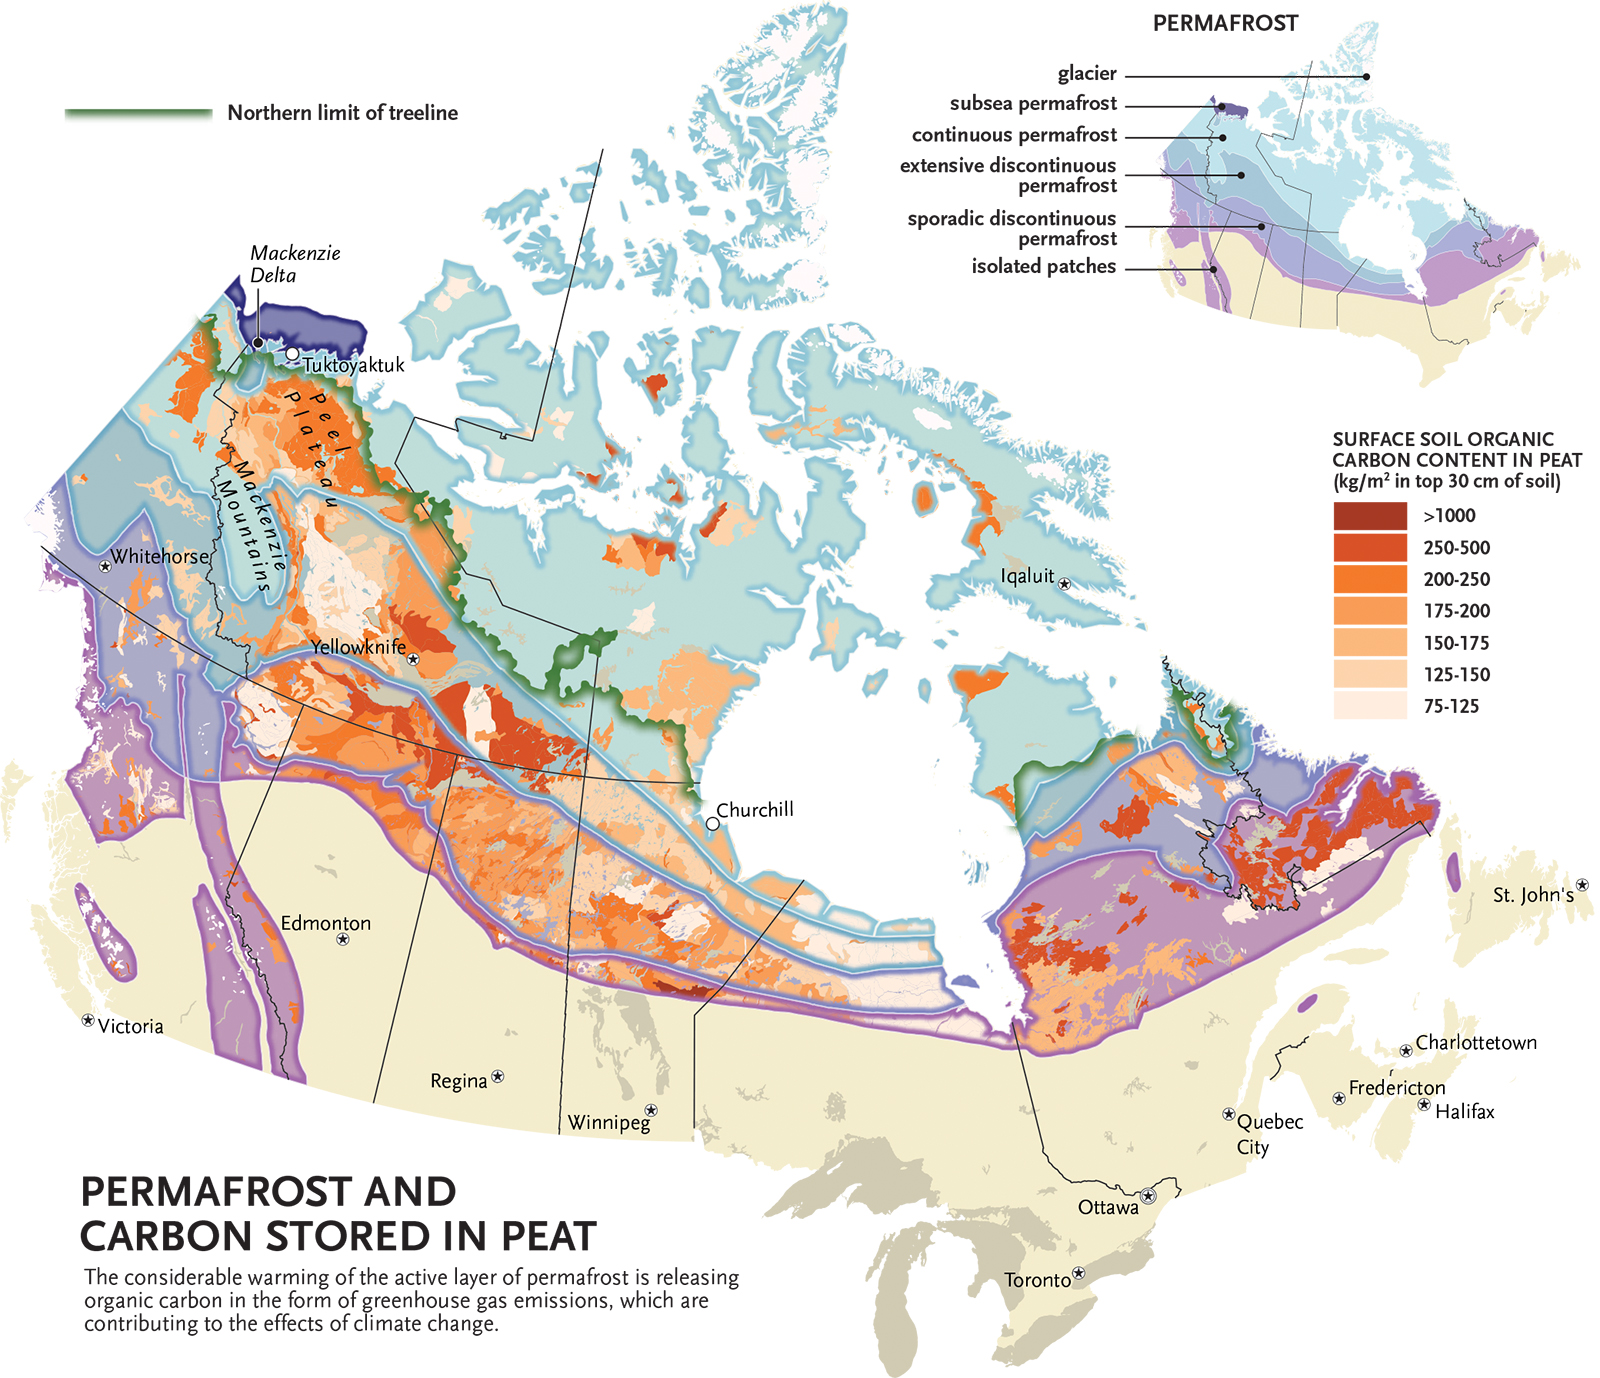 Permafrost Map Canada Arctic permafrost is thawing. Here's what that means for Canada's